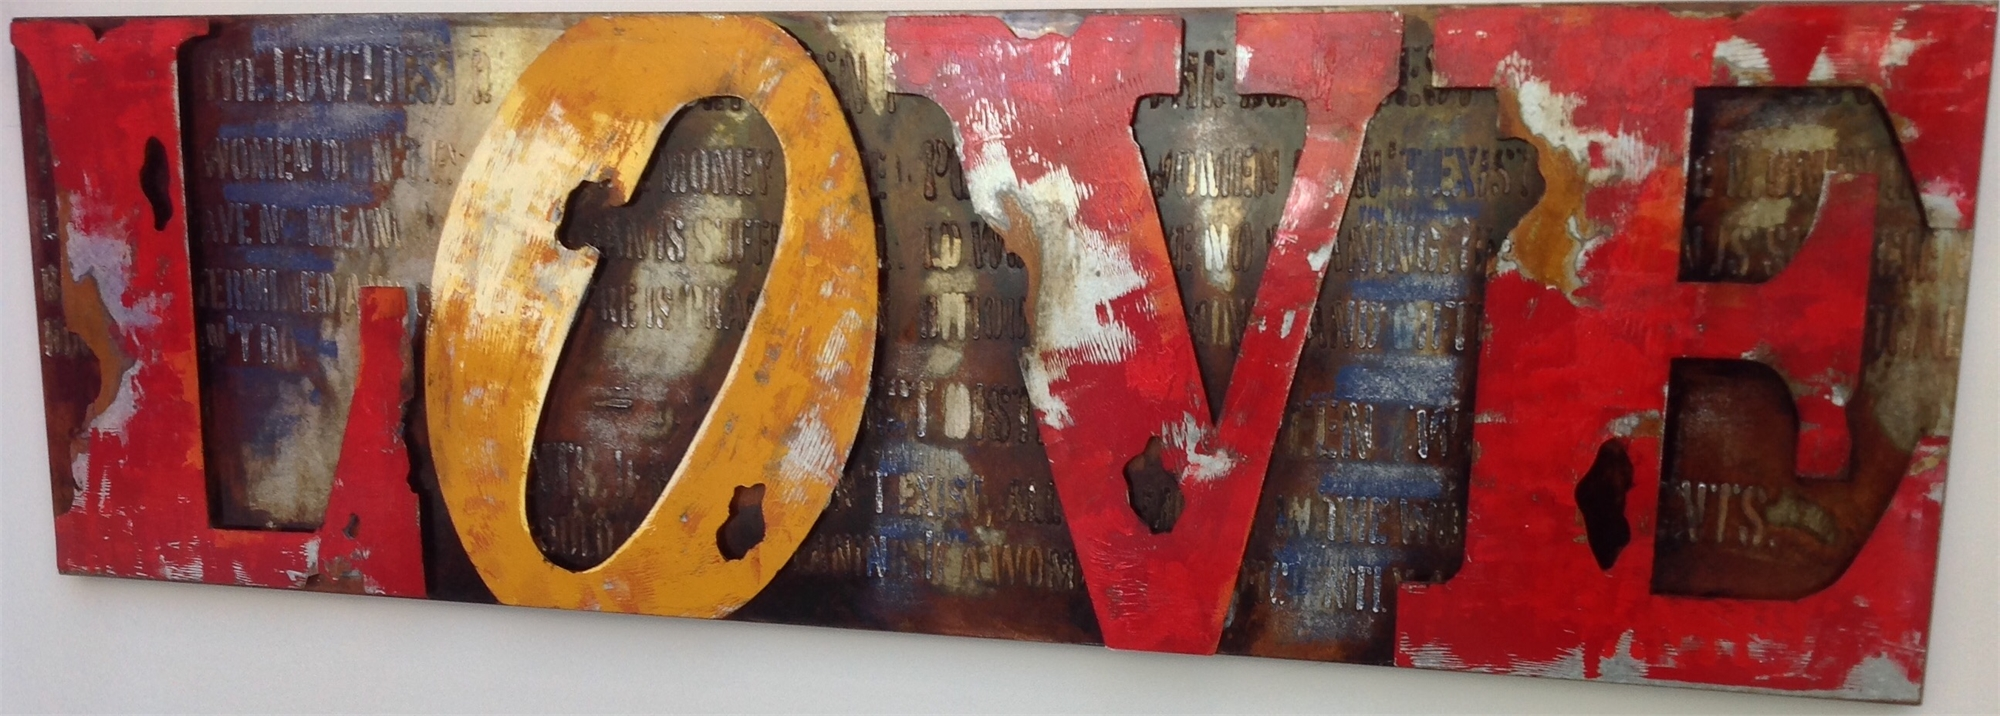 """""""LOVE"""" Sign by EB Studios"""